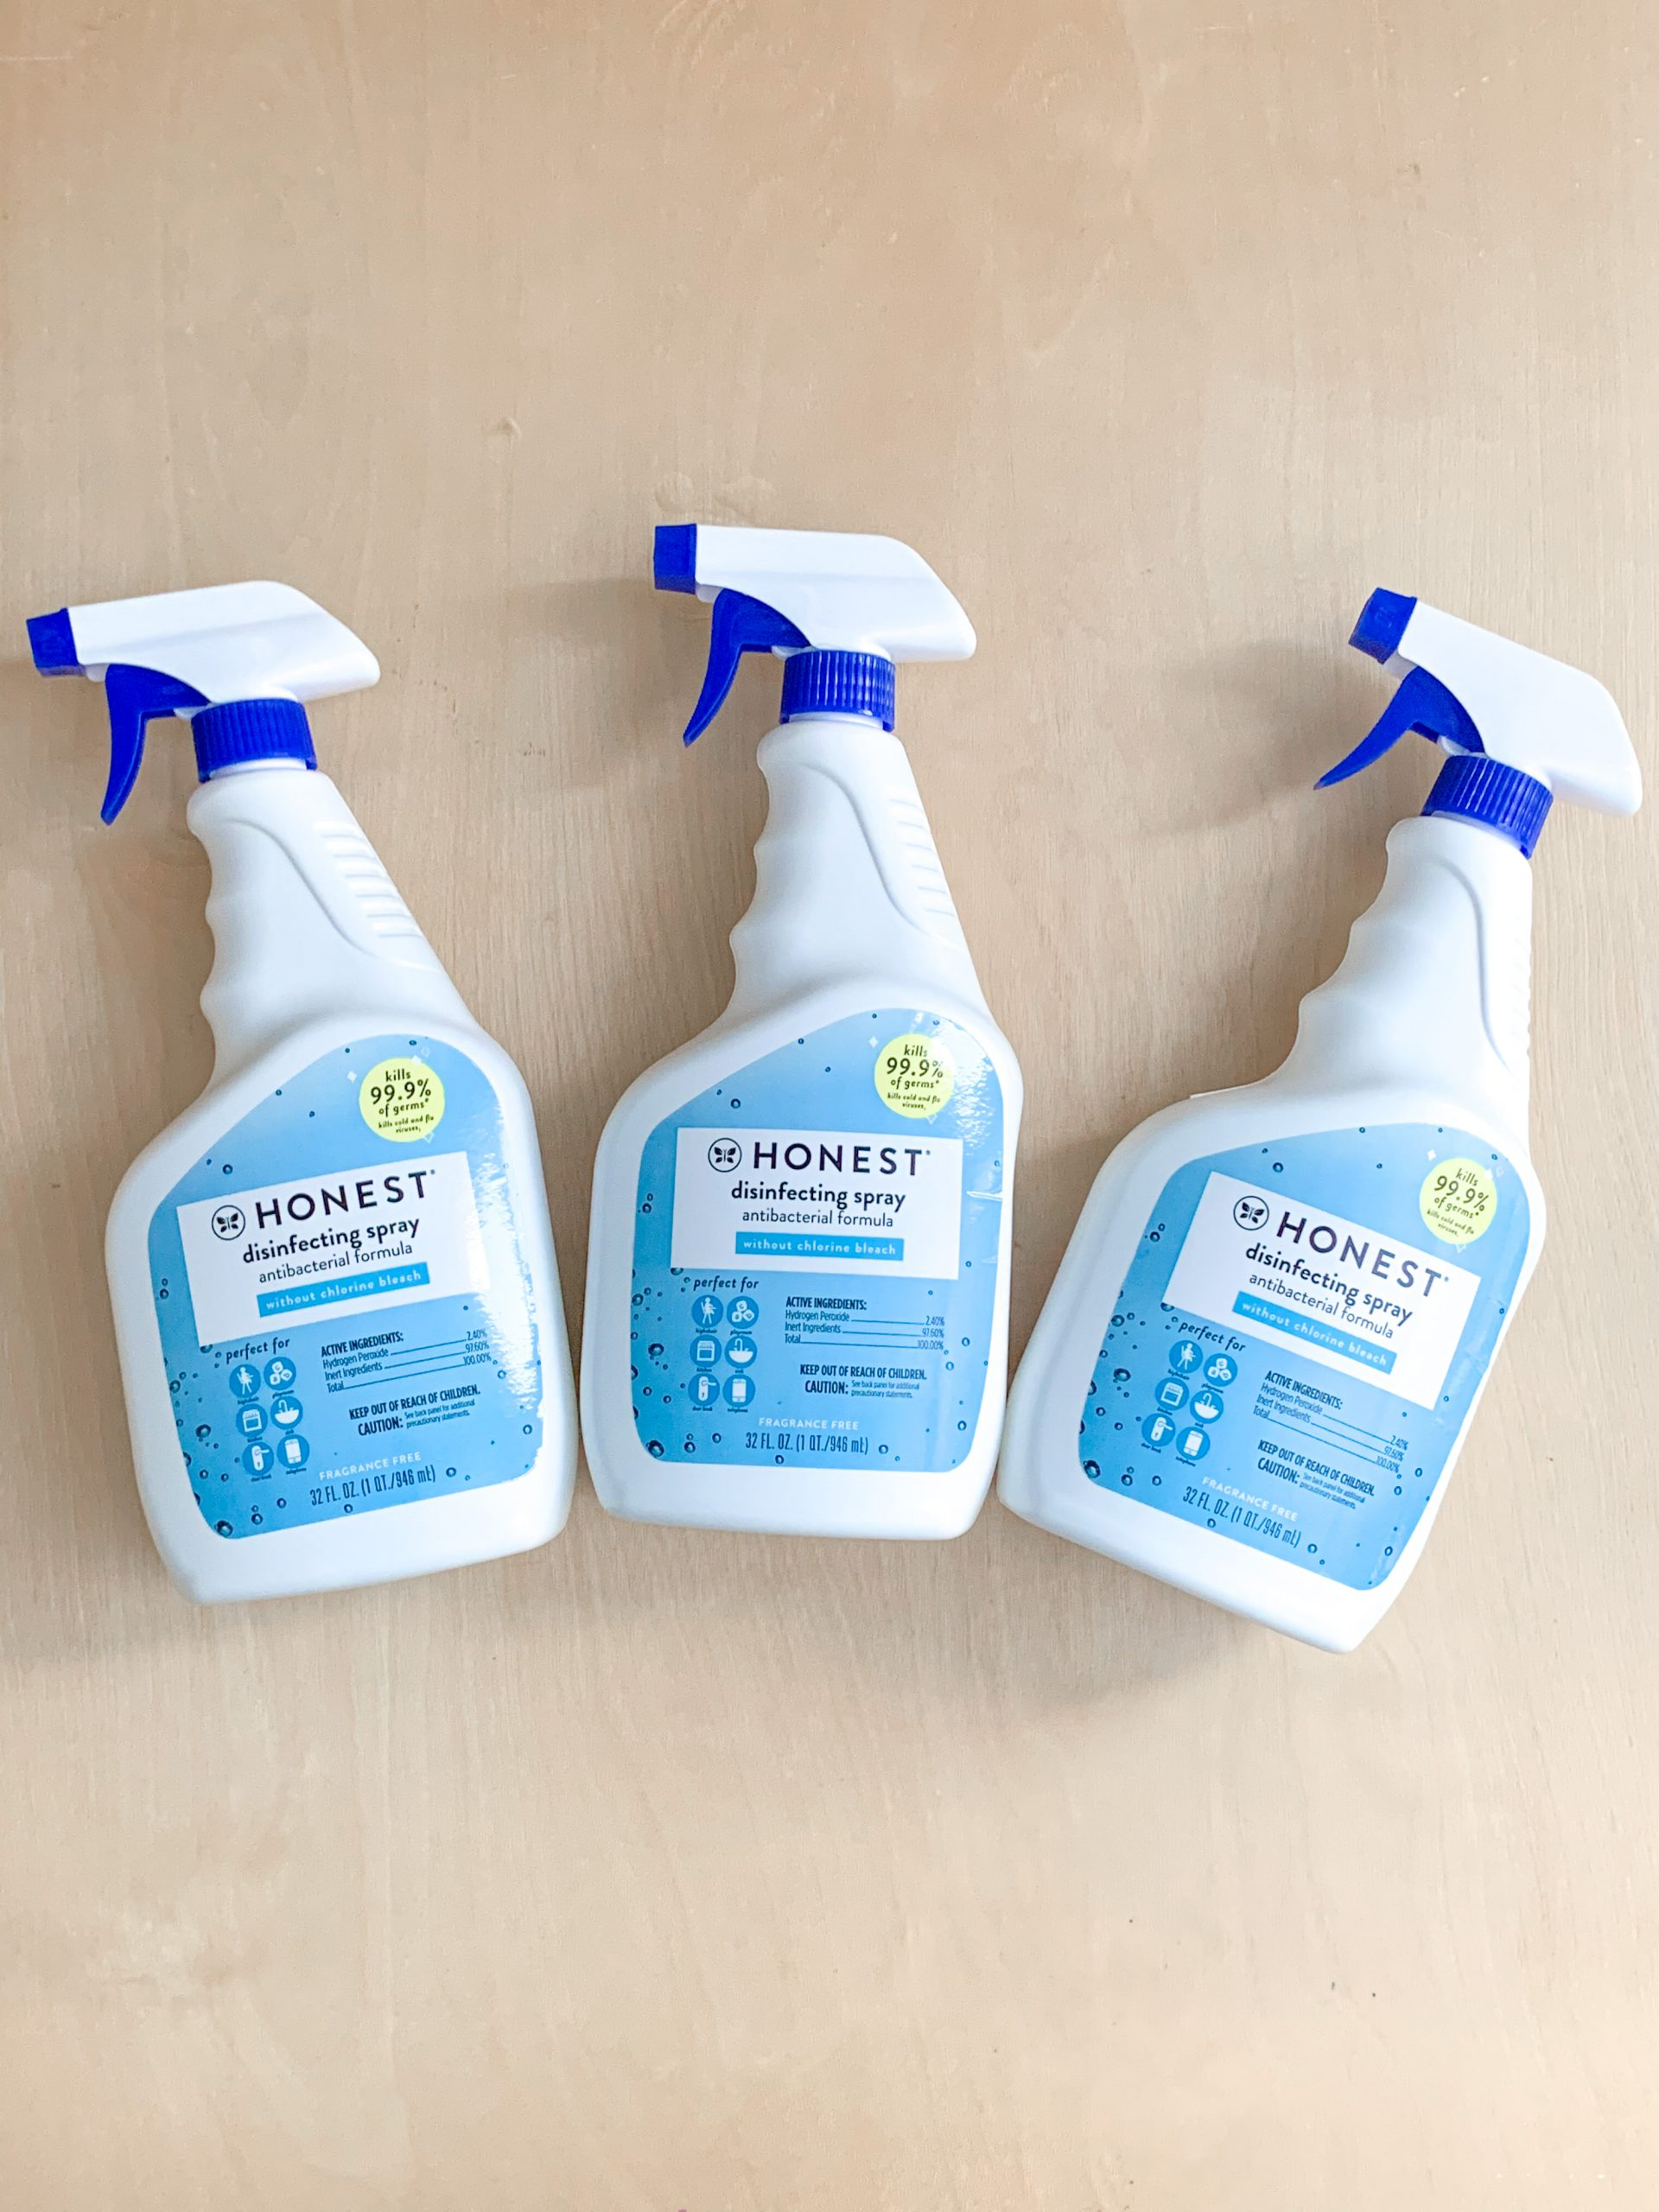 The Honest Company Disinfecting Solution